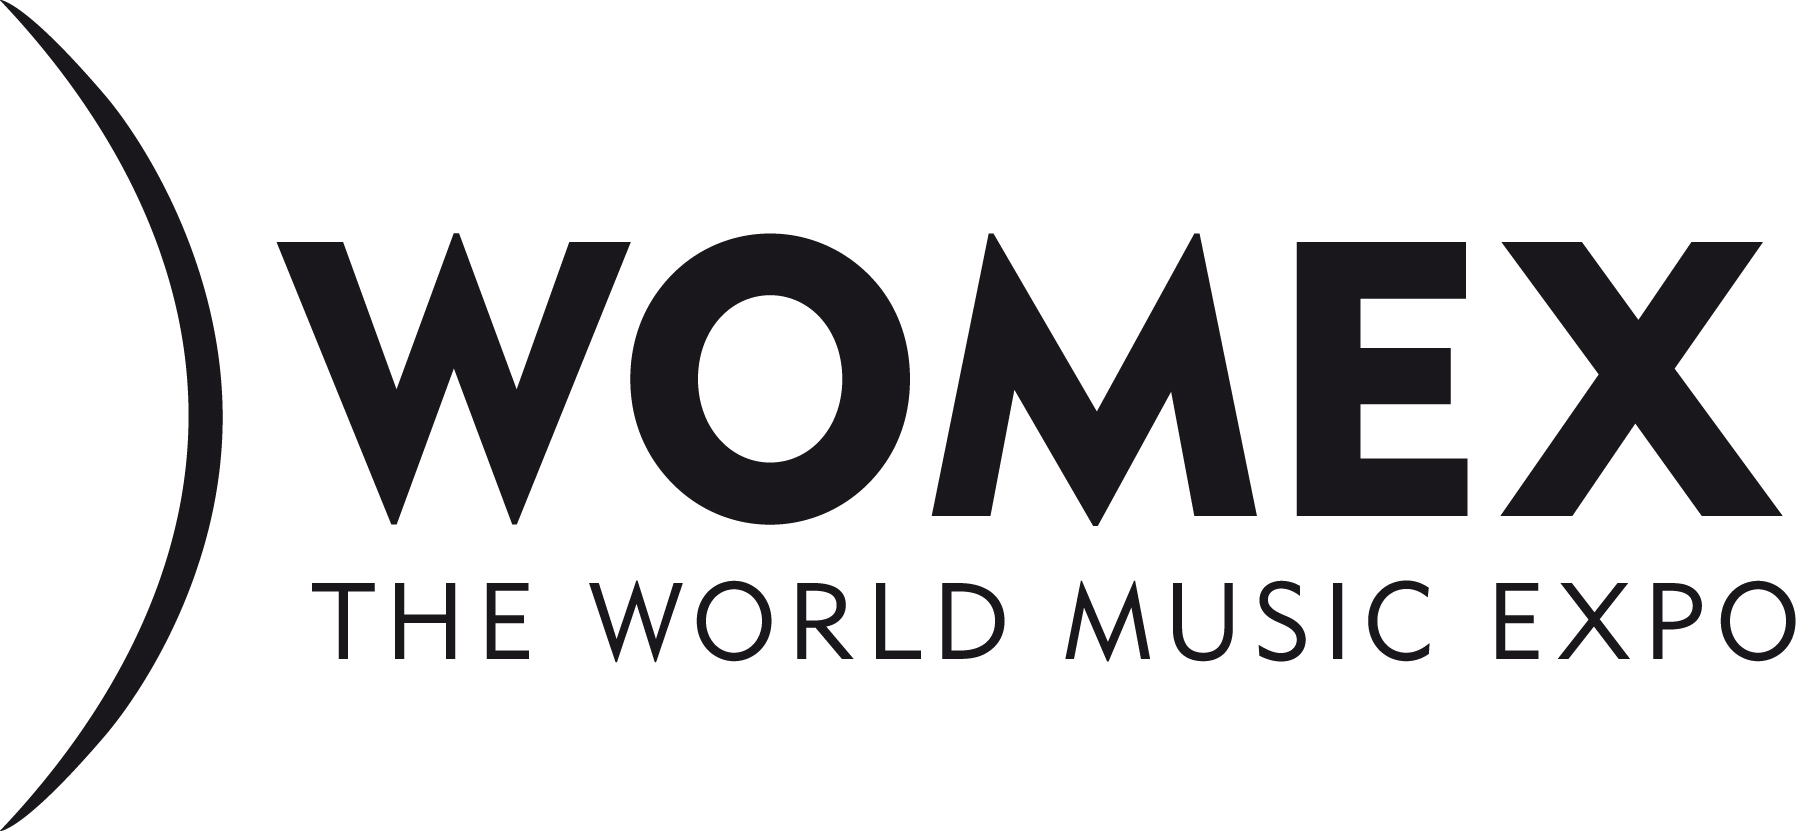 songwriting competition marketing partner Womex - The World Music Expo